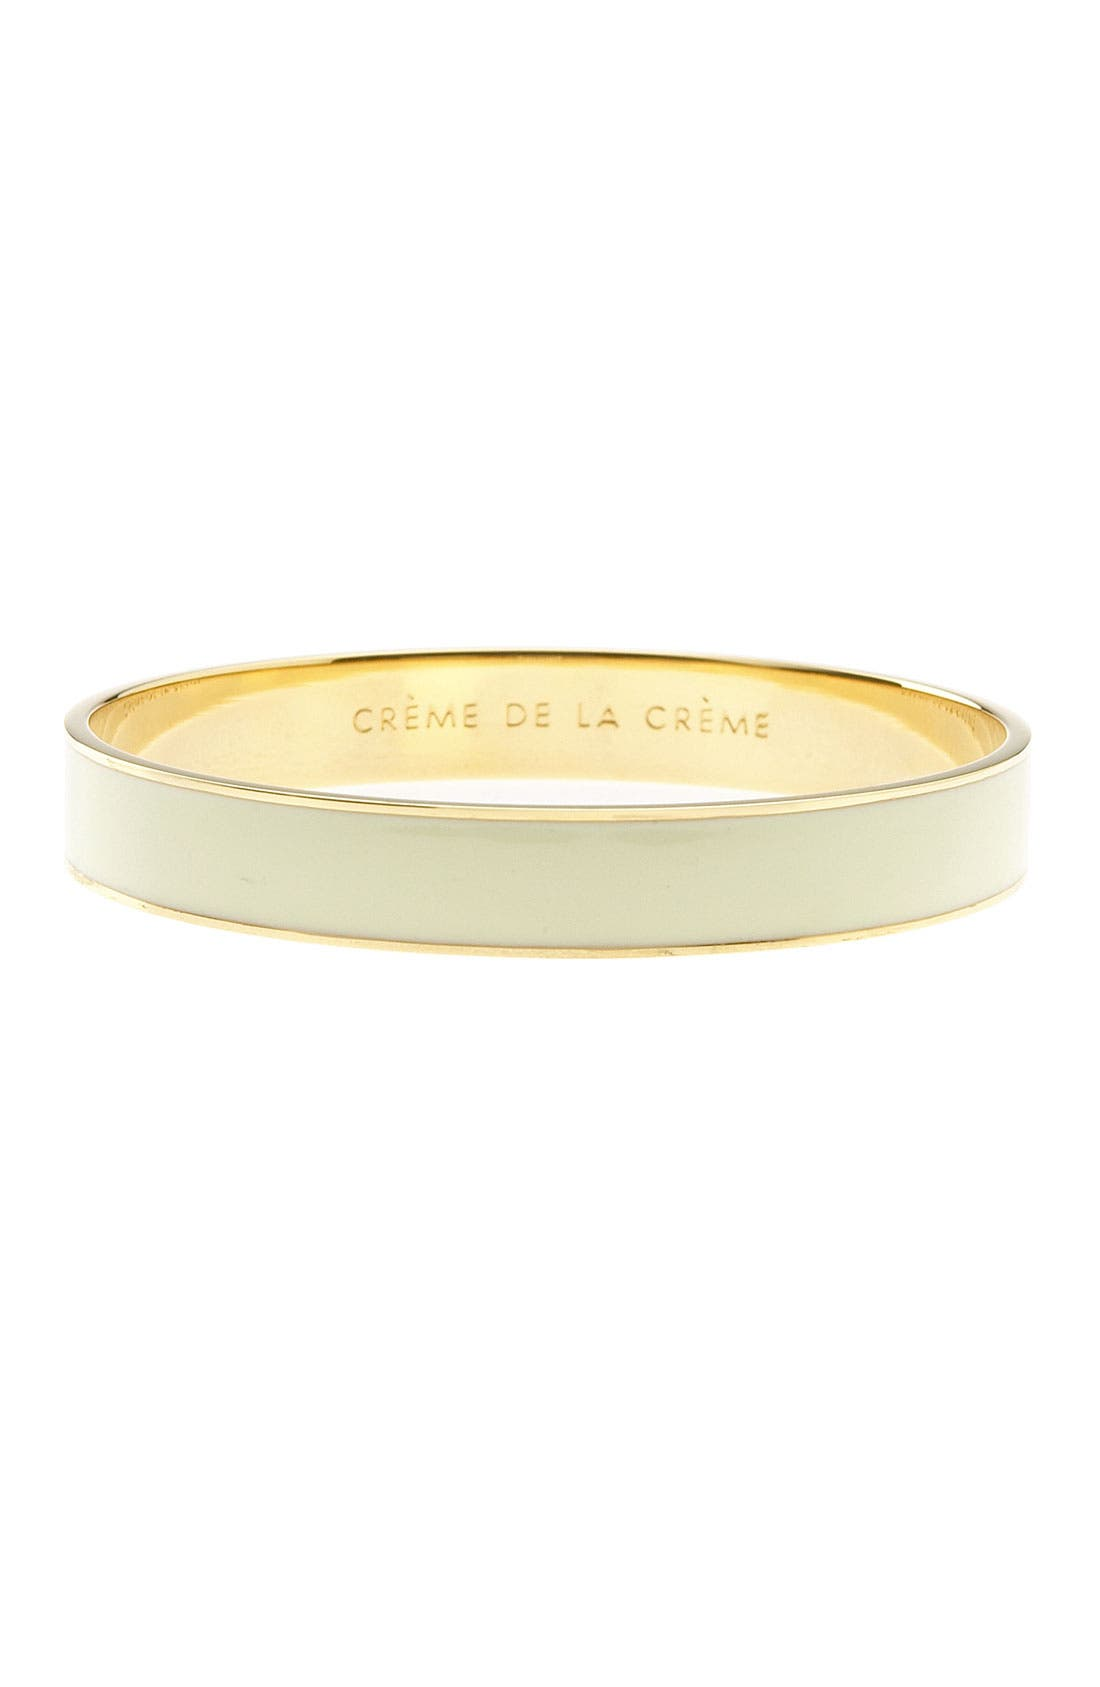 Alternate Image 1 Selected - kate spade new york 'idiom - crème de la crème' bangle